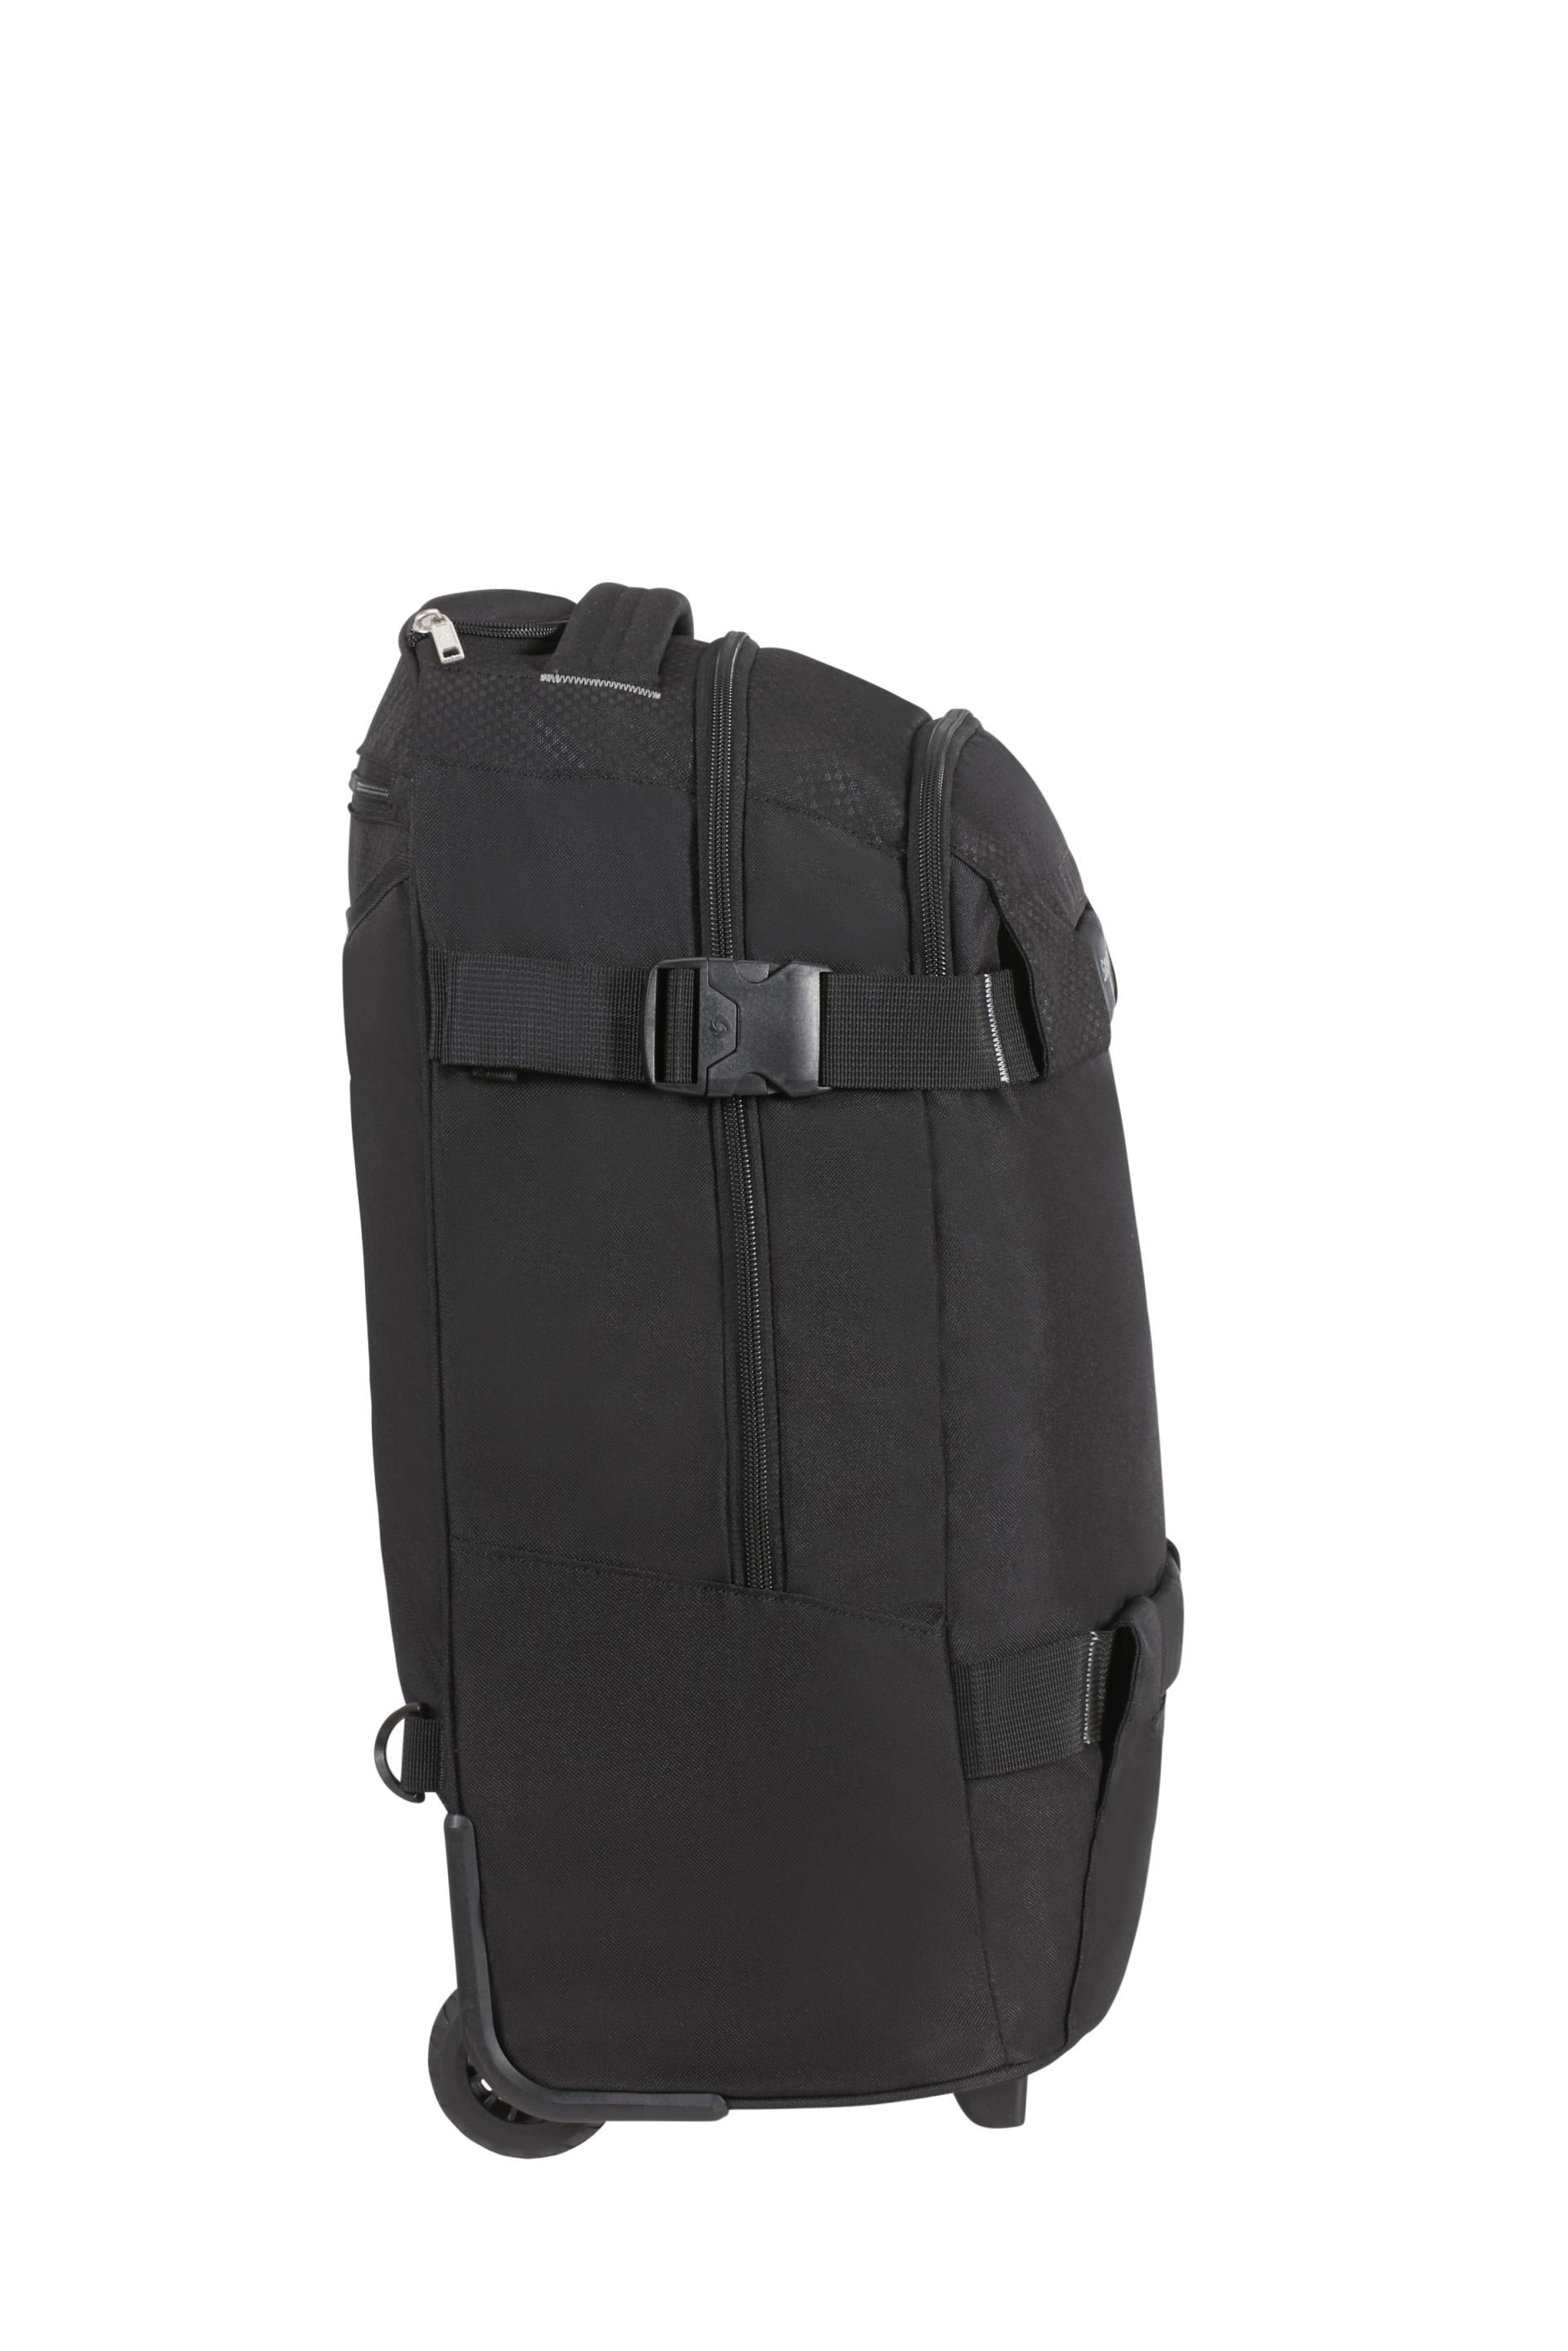 Samsonite Sonora Laptop Backpack/wh 55, View 7